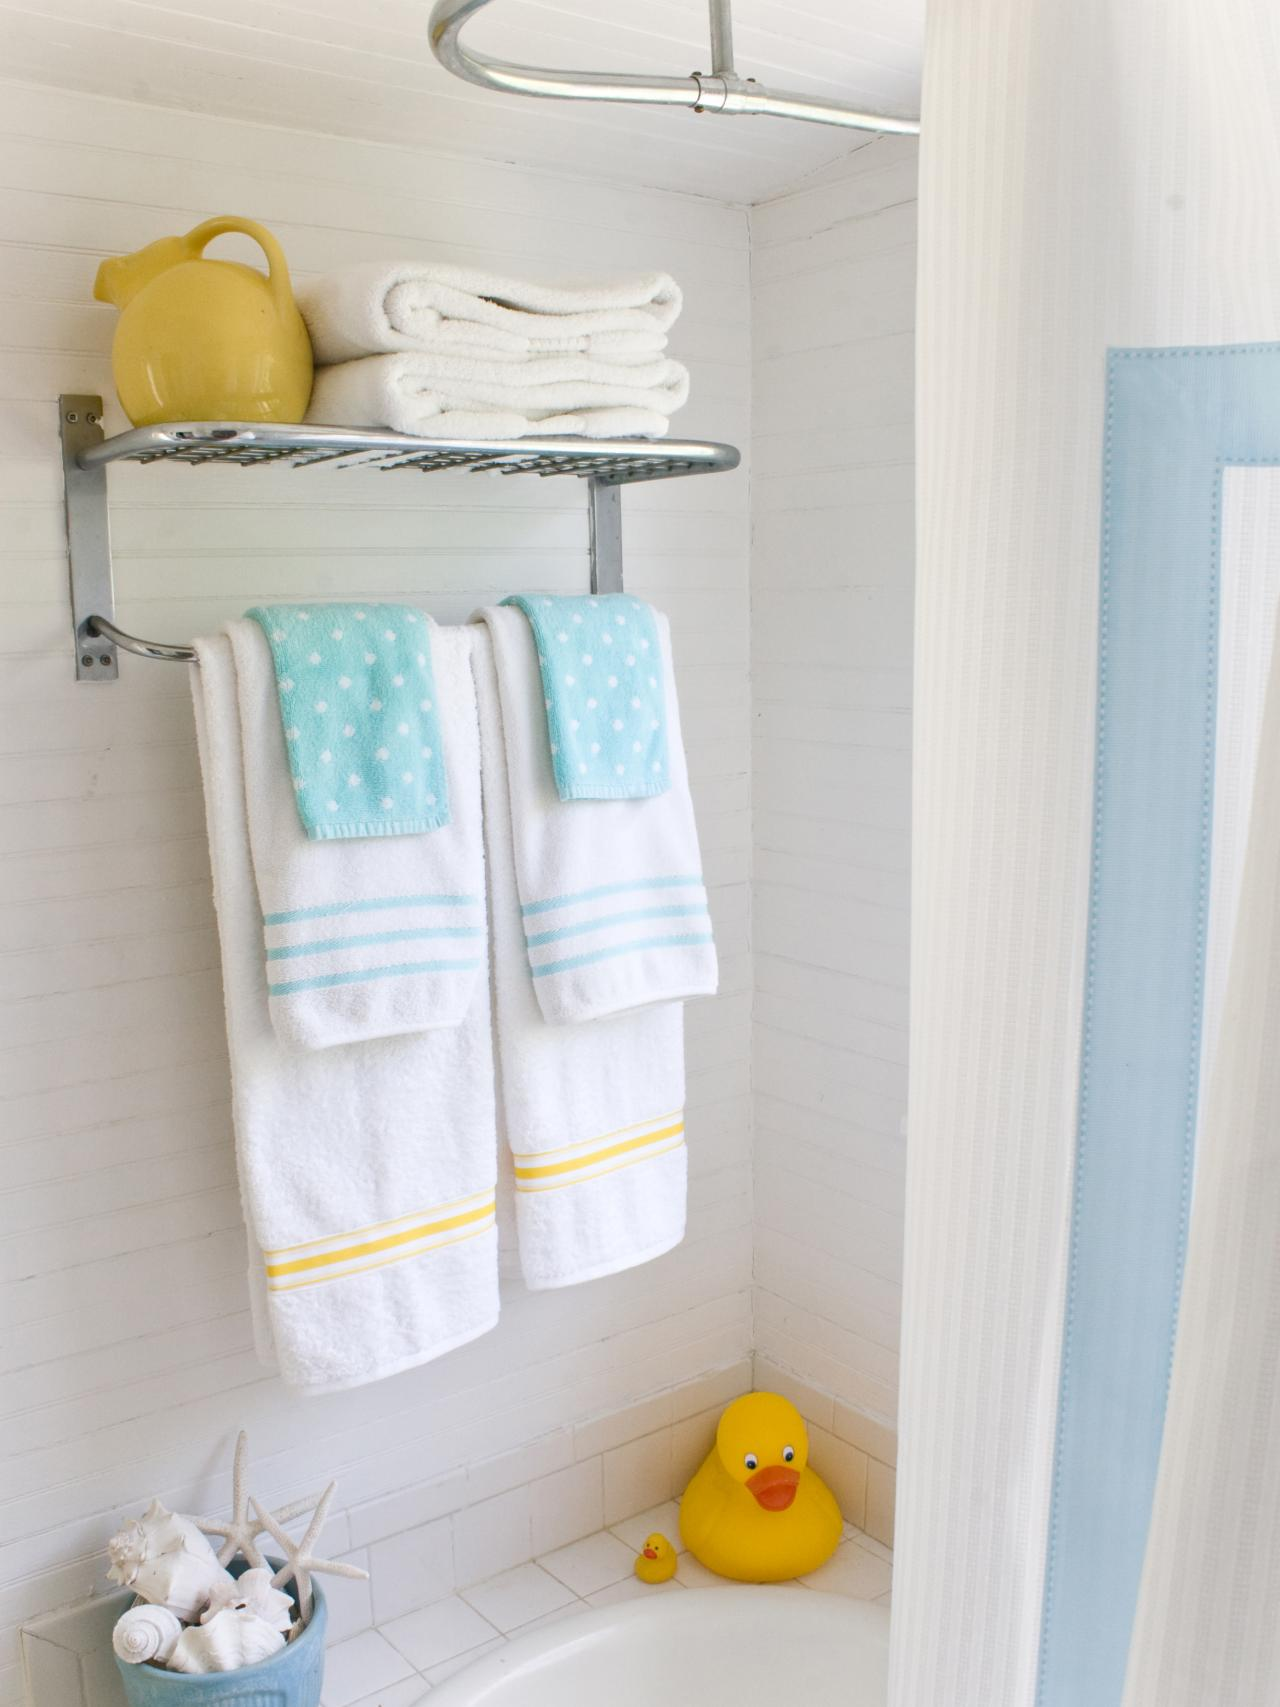 A Basic Guide To Bath Towels HGTV - Bath towel brands for small bathroom ideas